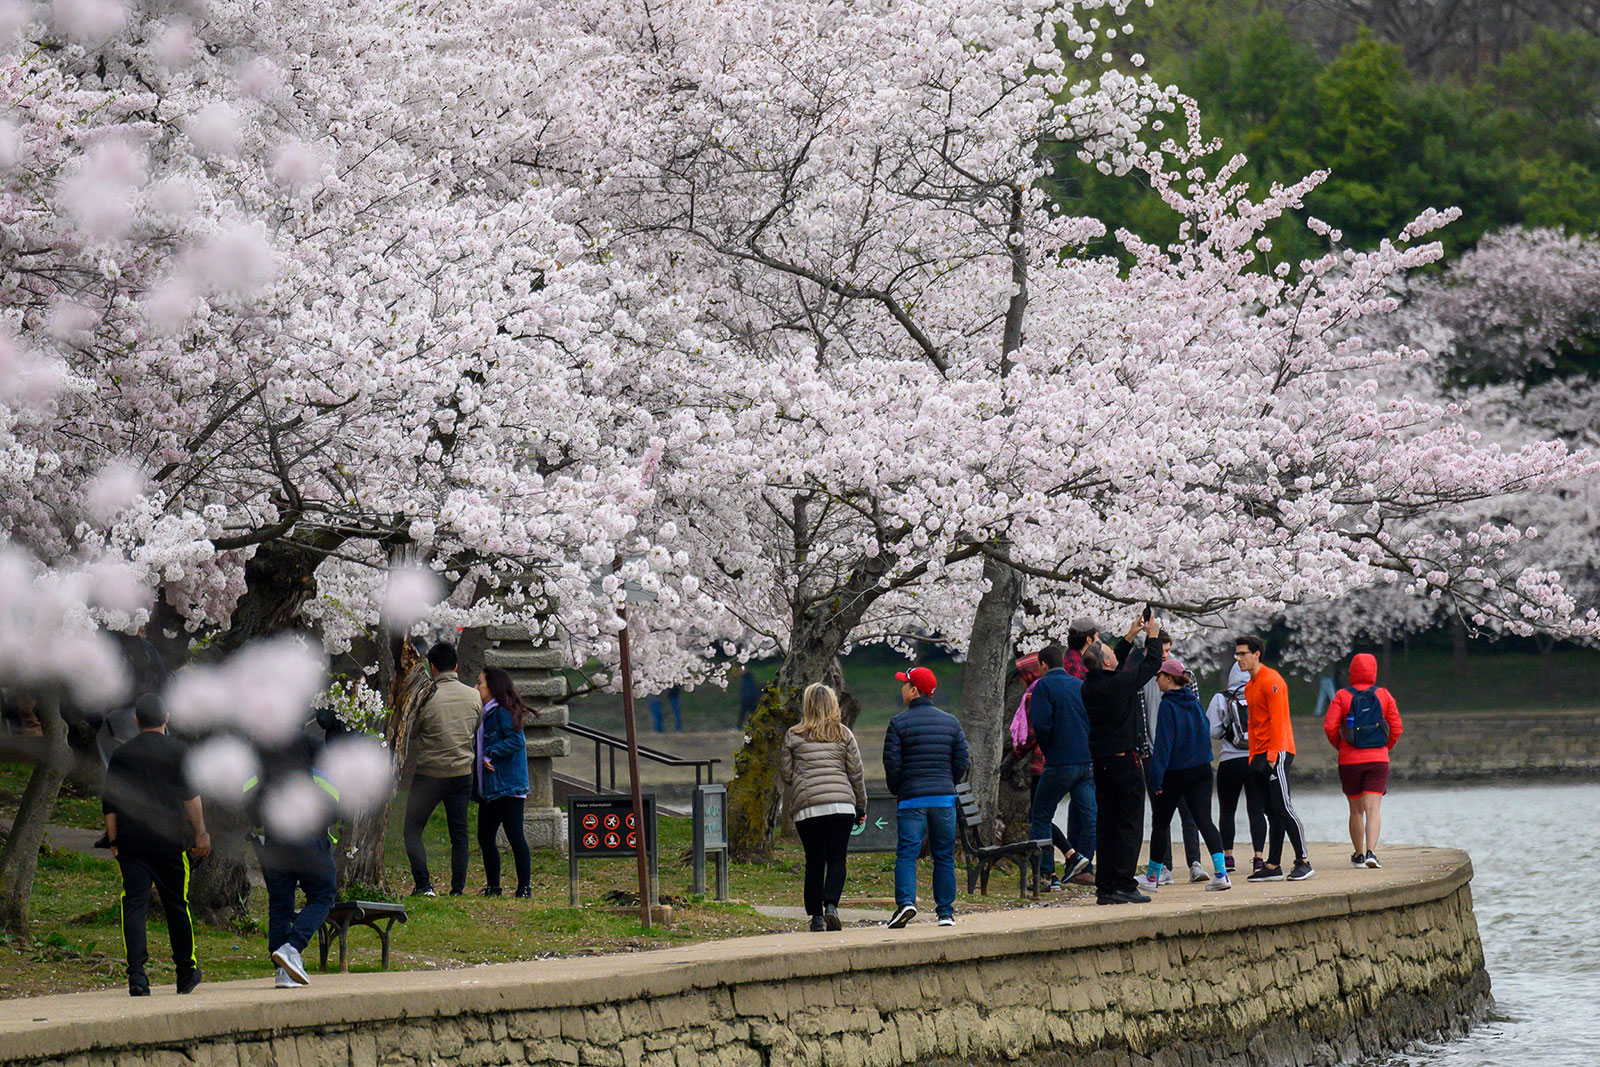 Pedestrians walk around the Tidal Basin in Washington, DC, to view the city's famous cherry blossoms in full bloom on March 21.